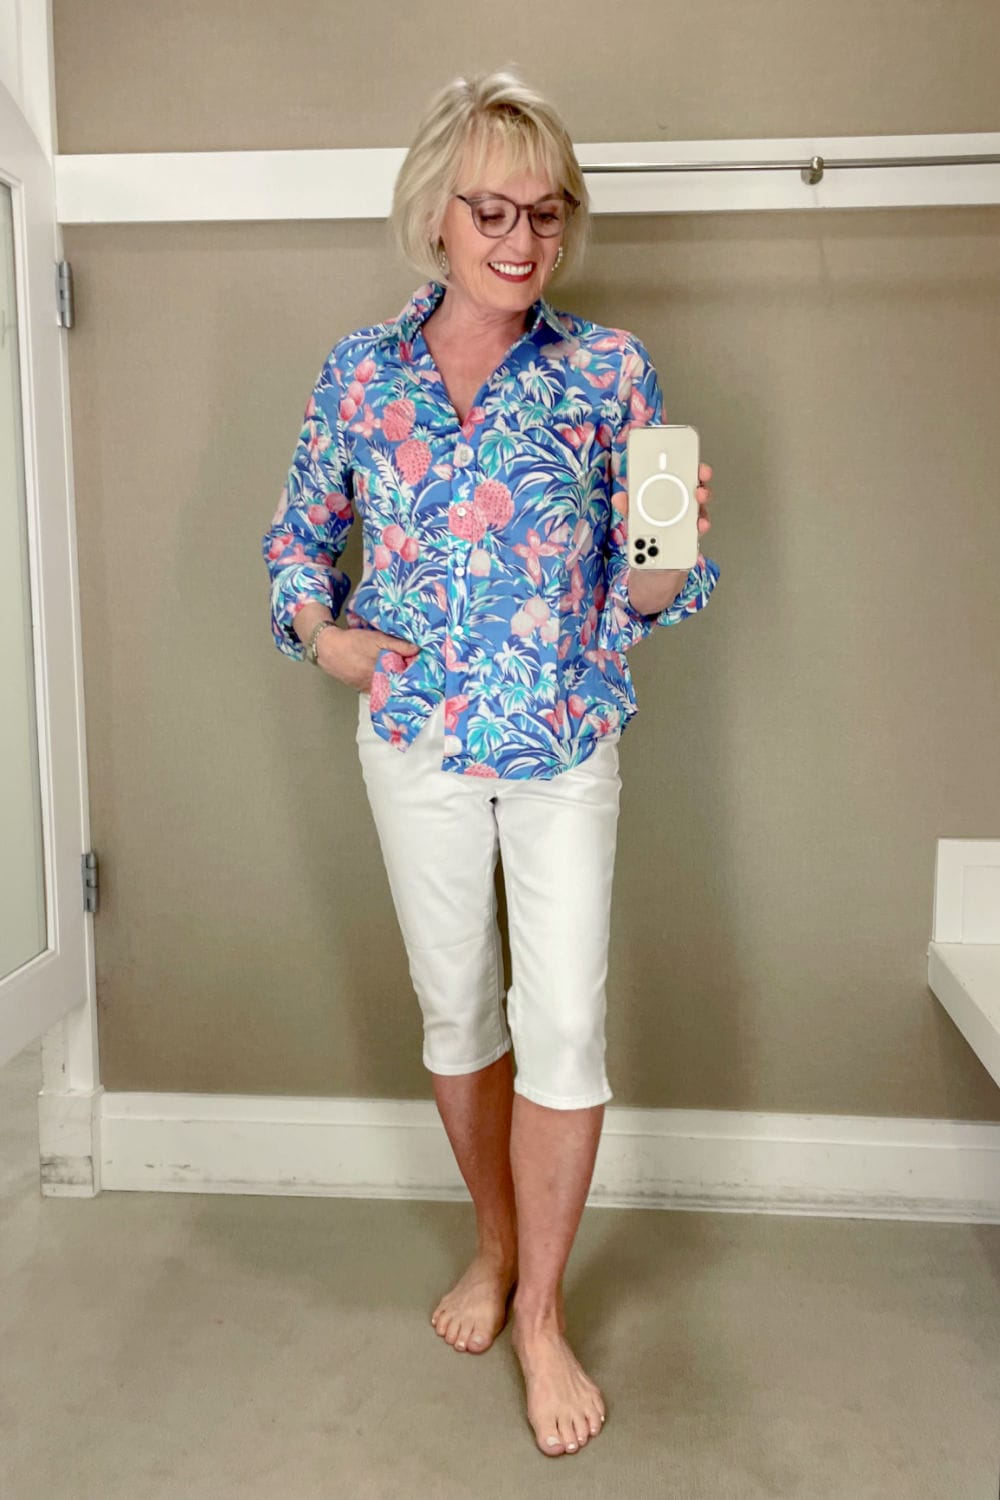 over 50 woman modeling the new white pedal pushers and floral top in Talbots dressing room